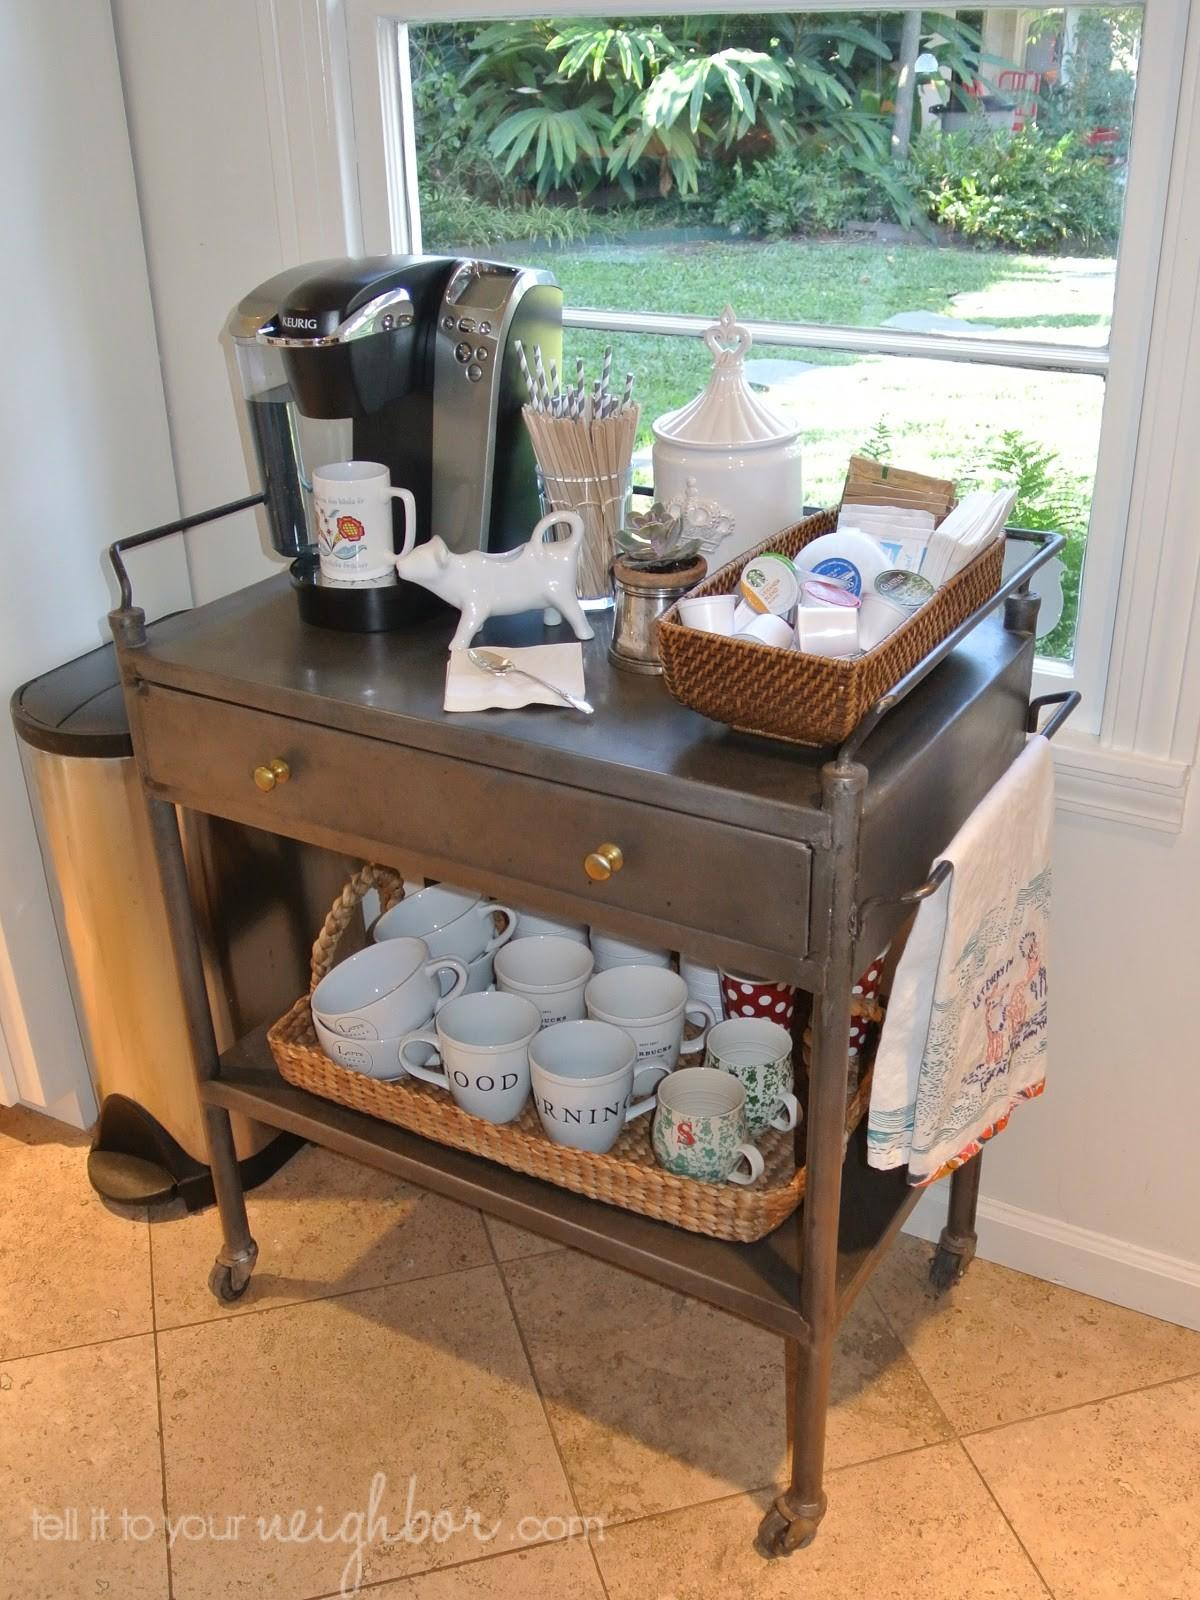 Tell Your Neighbor Coffee Cart Home